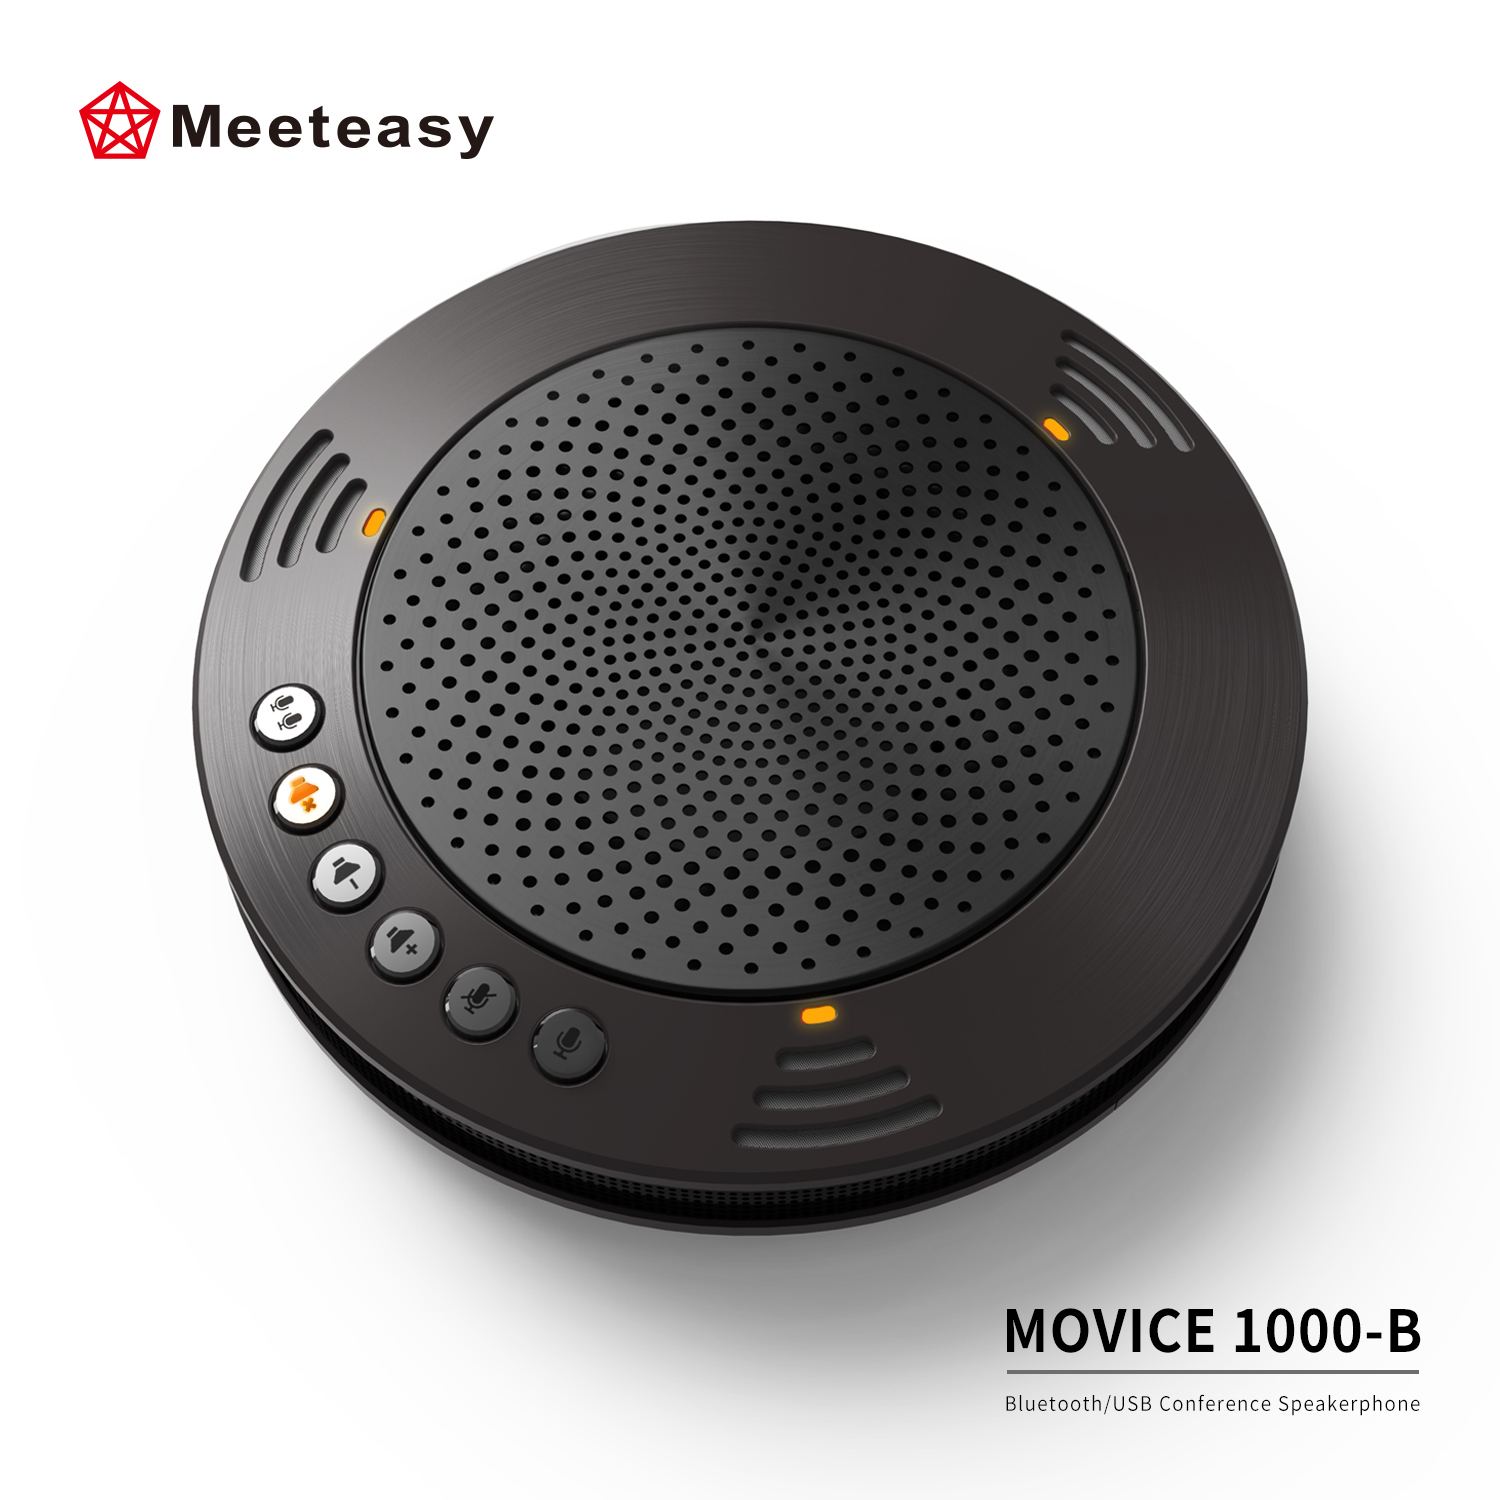 Meeteasy MVOICE 1000-B Portable Wireless BT Speakerphone Conference Speaker for Web-conferencing